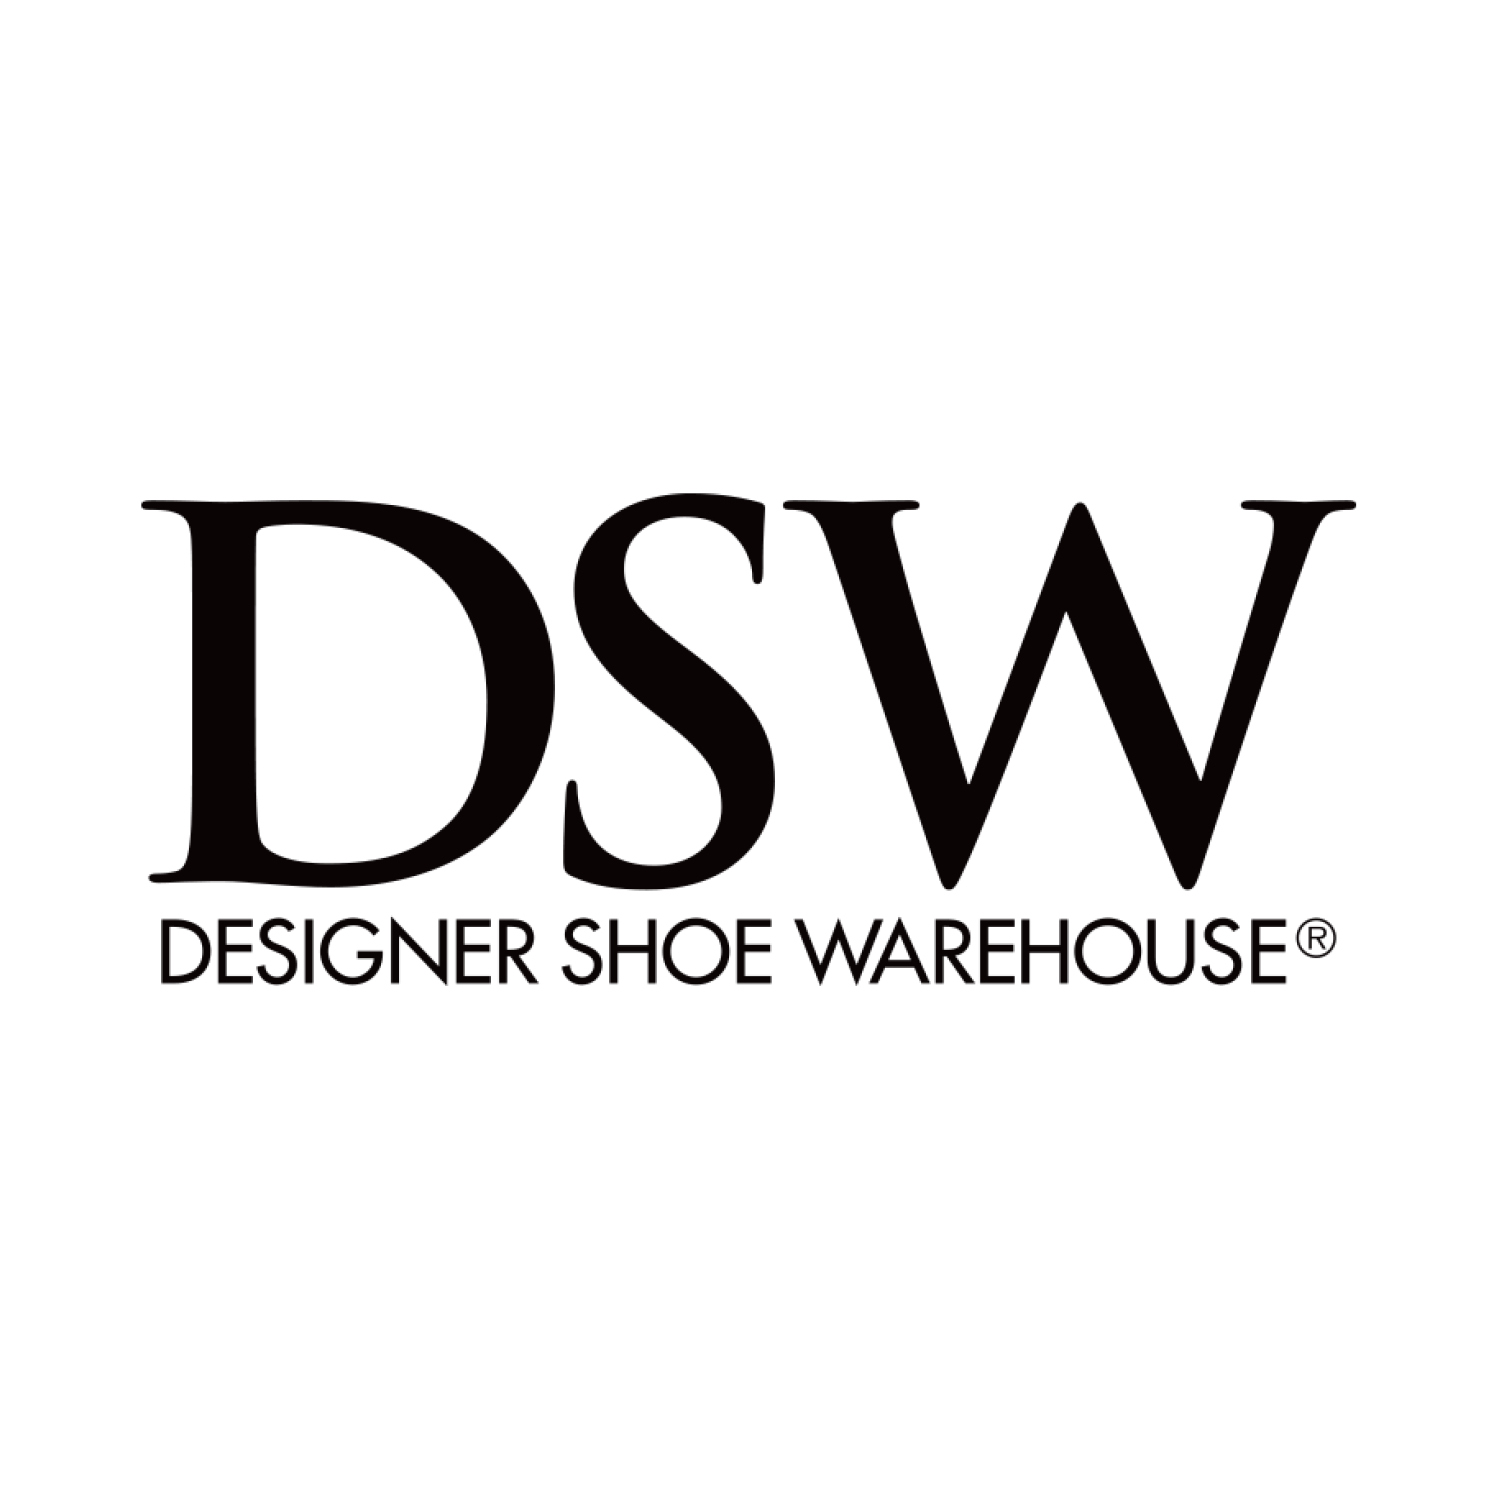 DSW Menu Sign - Price Points: $99.99 - FR